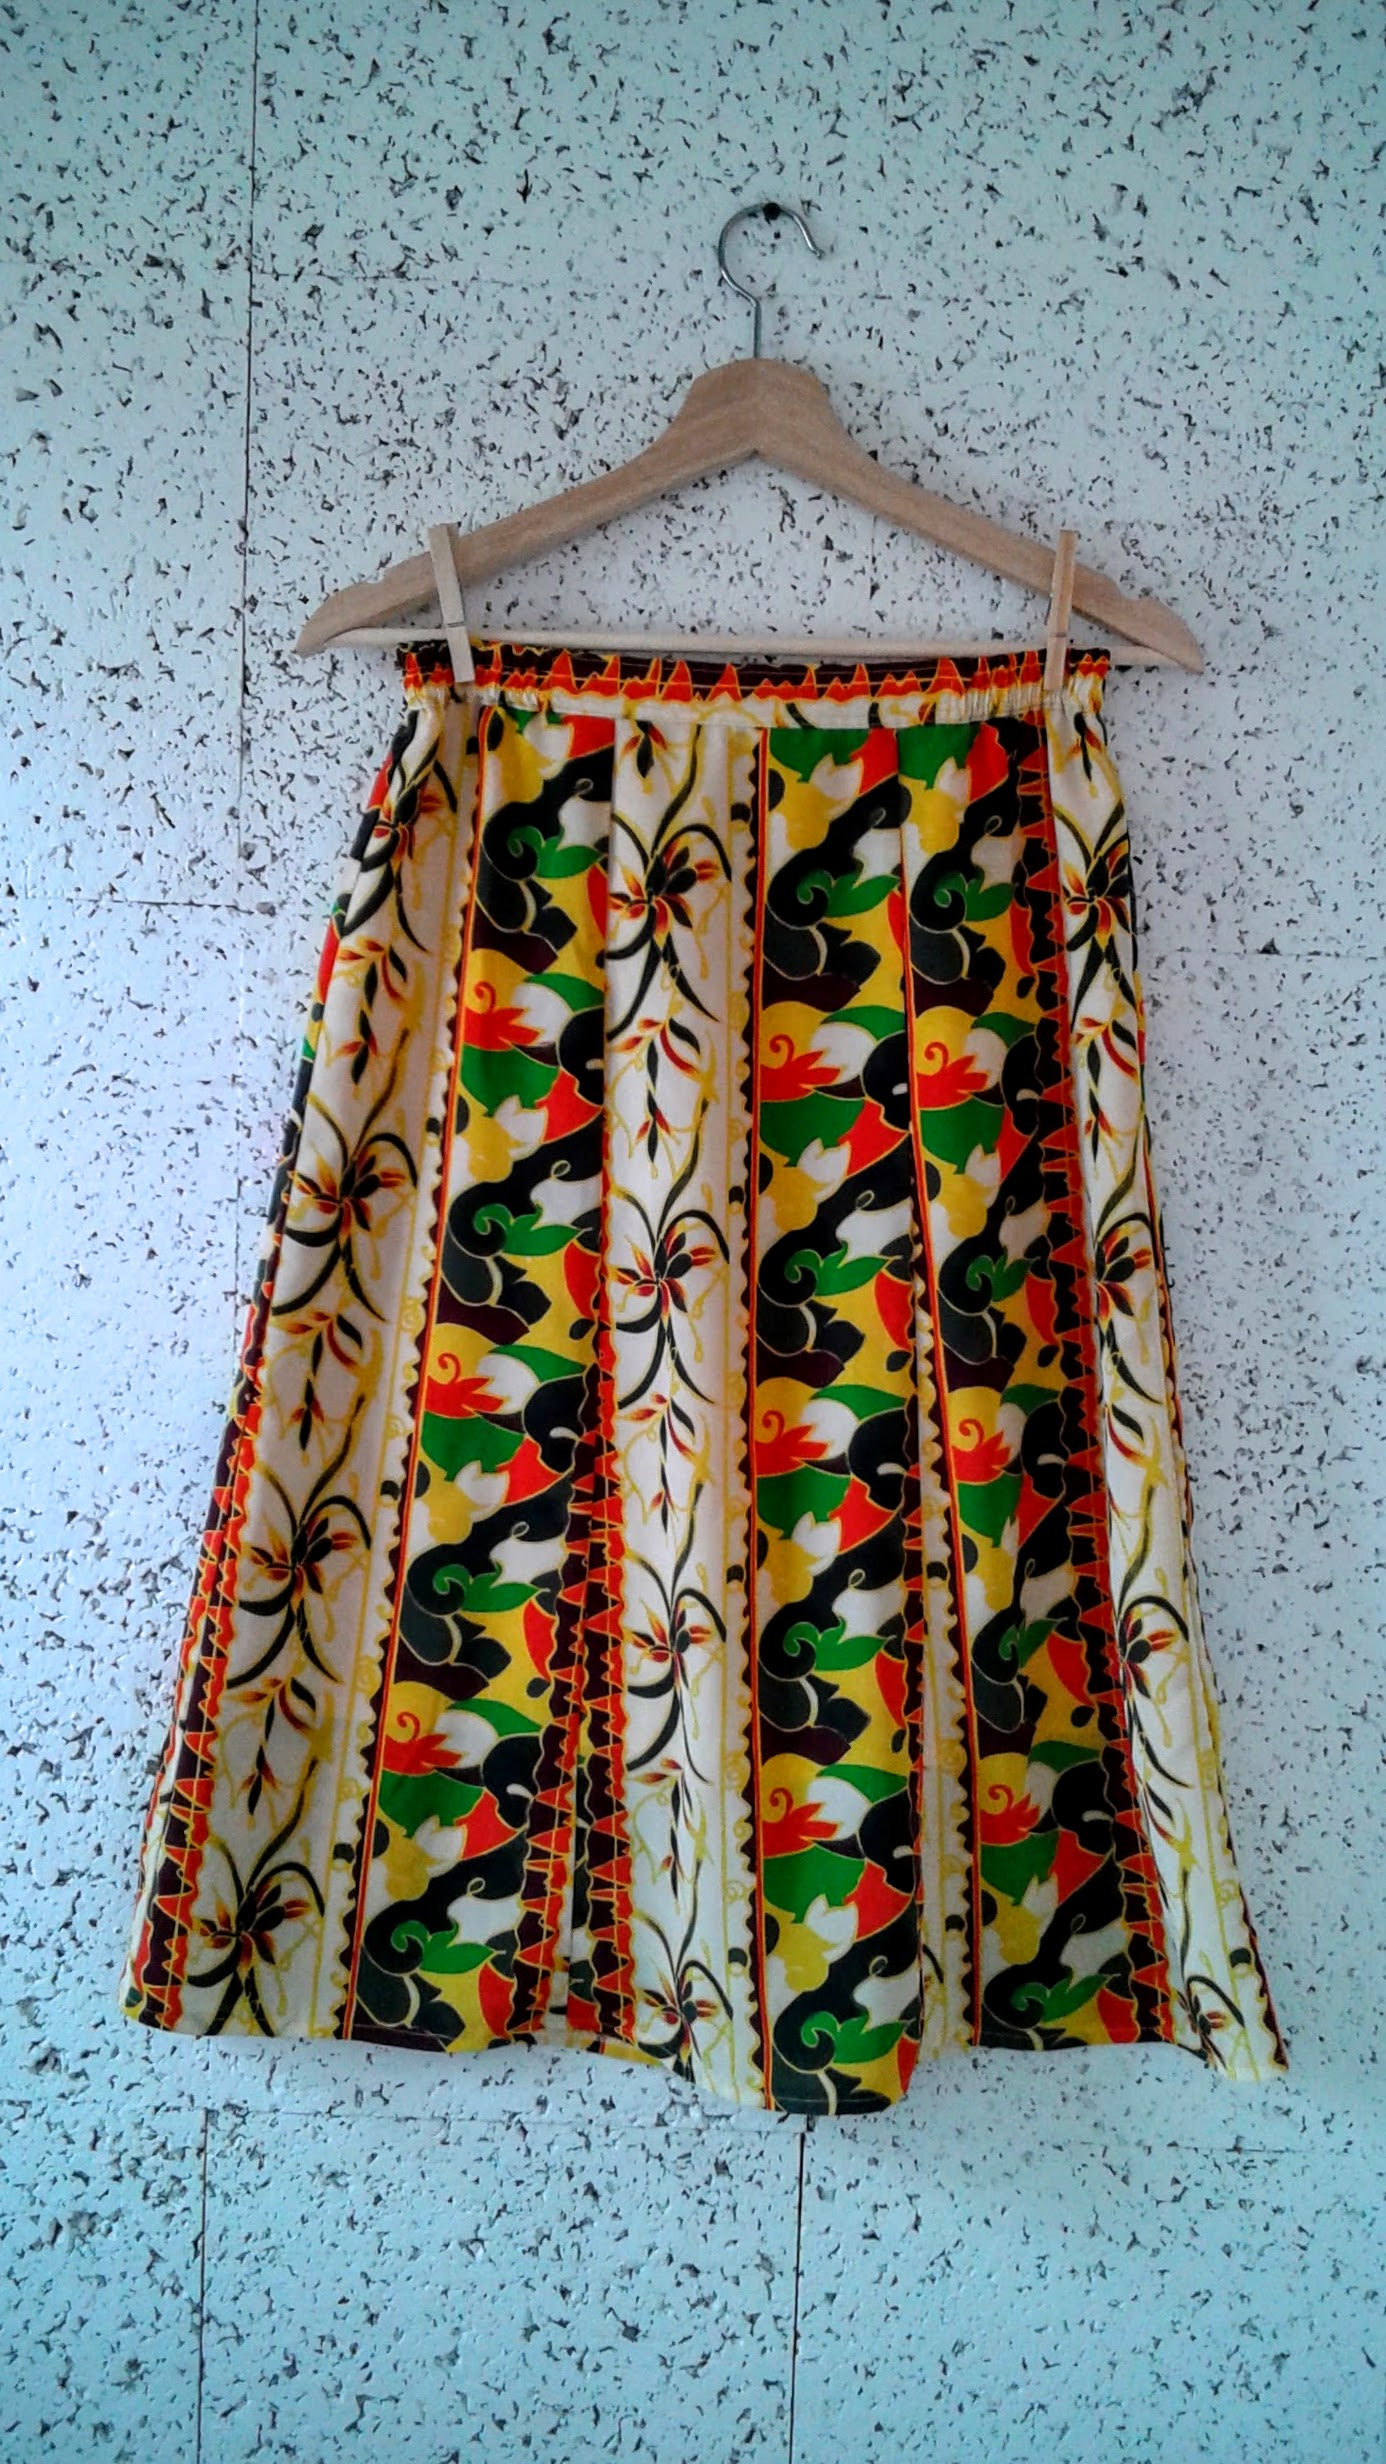 Skirt; Size S/M, $18